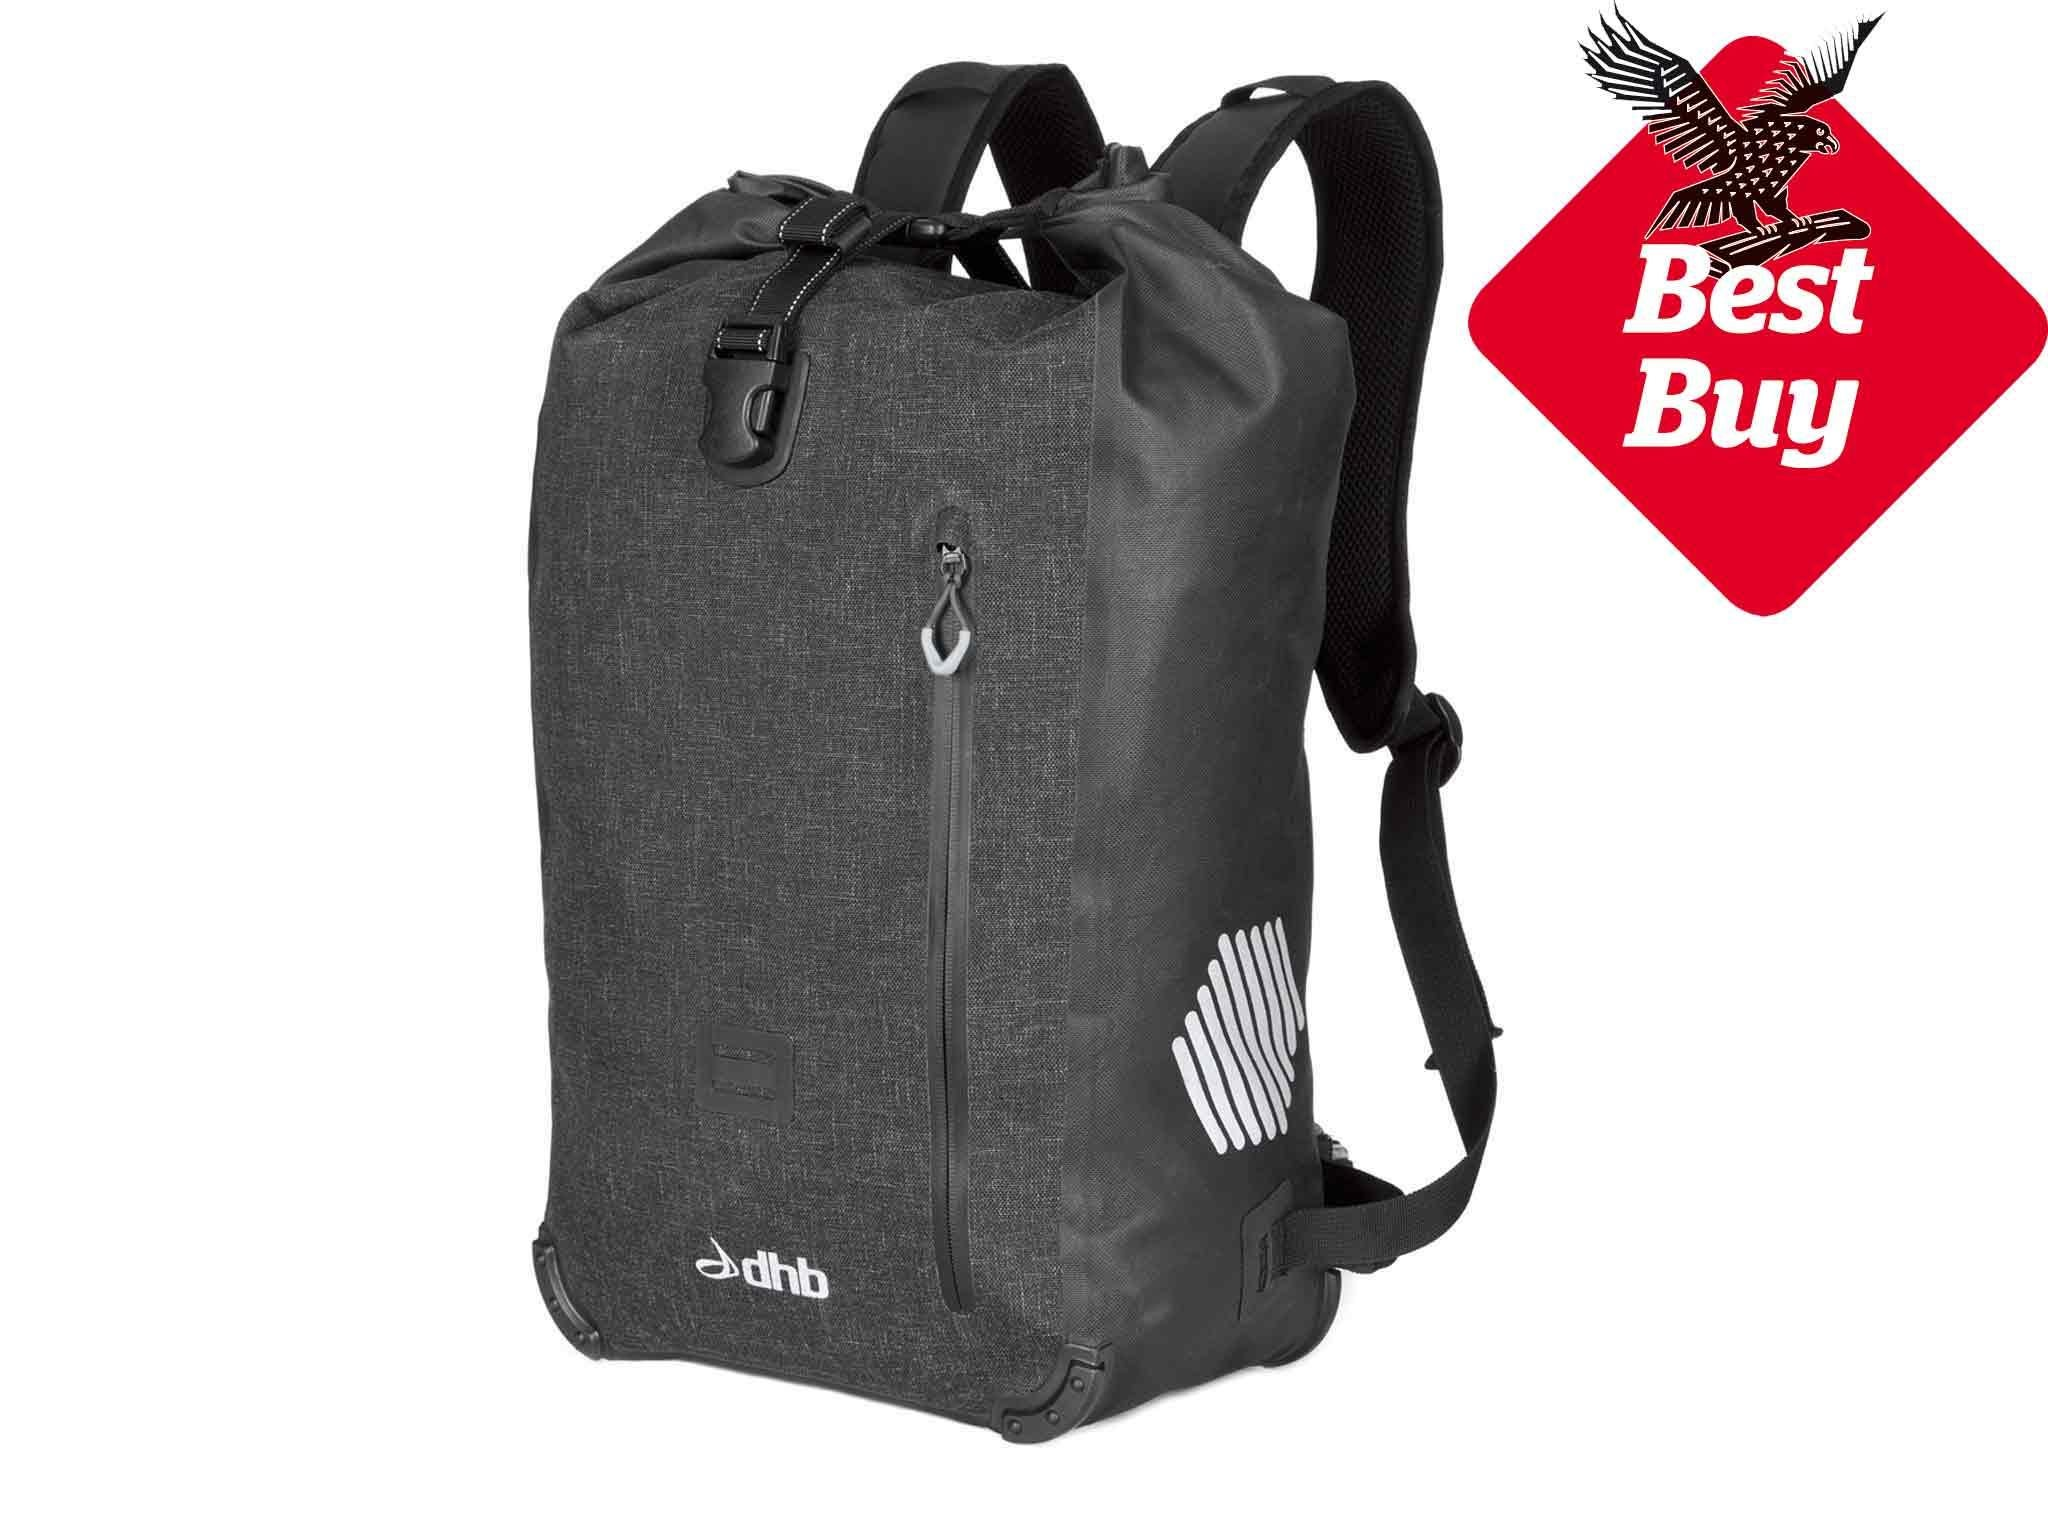 e1262f053f84 11 best cycling bags for commuters